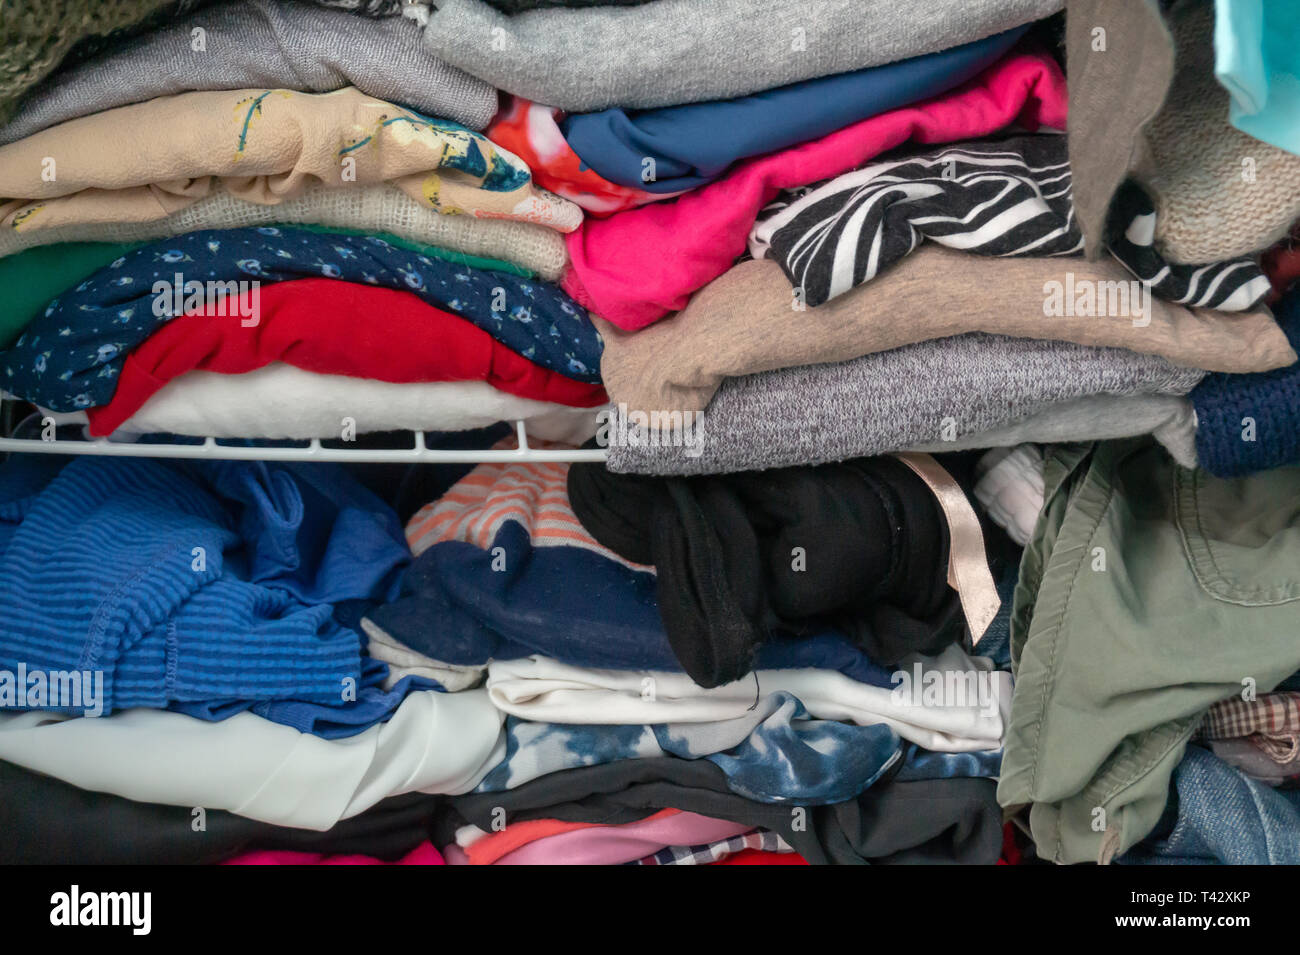 Messy folded clothes crammed in a closet on a shelf. Depicting woman's wardrobe, consumerism, cleaning up, tidying up, purging, etc. - Stock Image